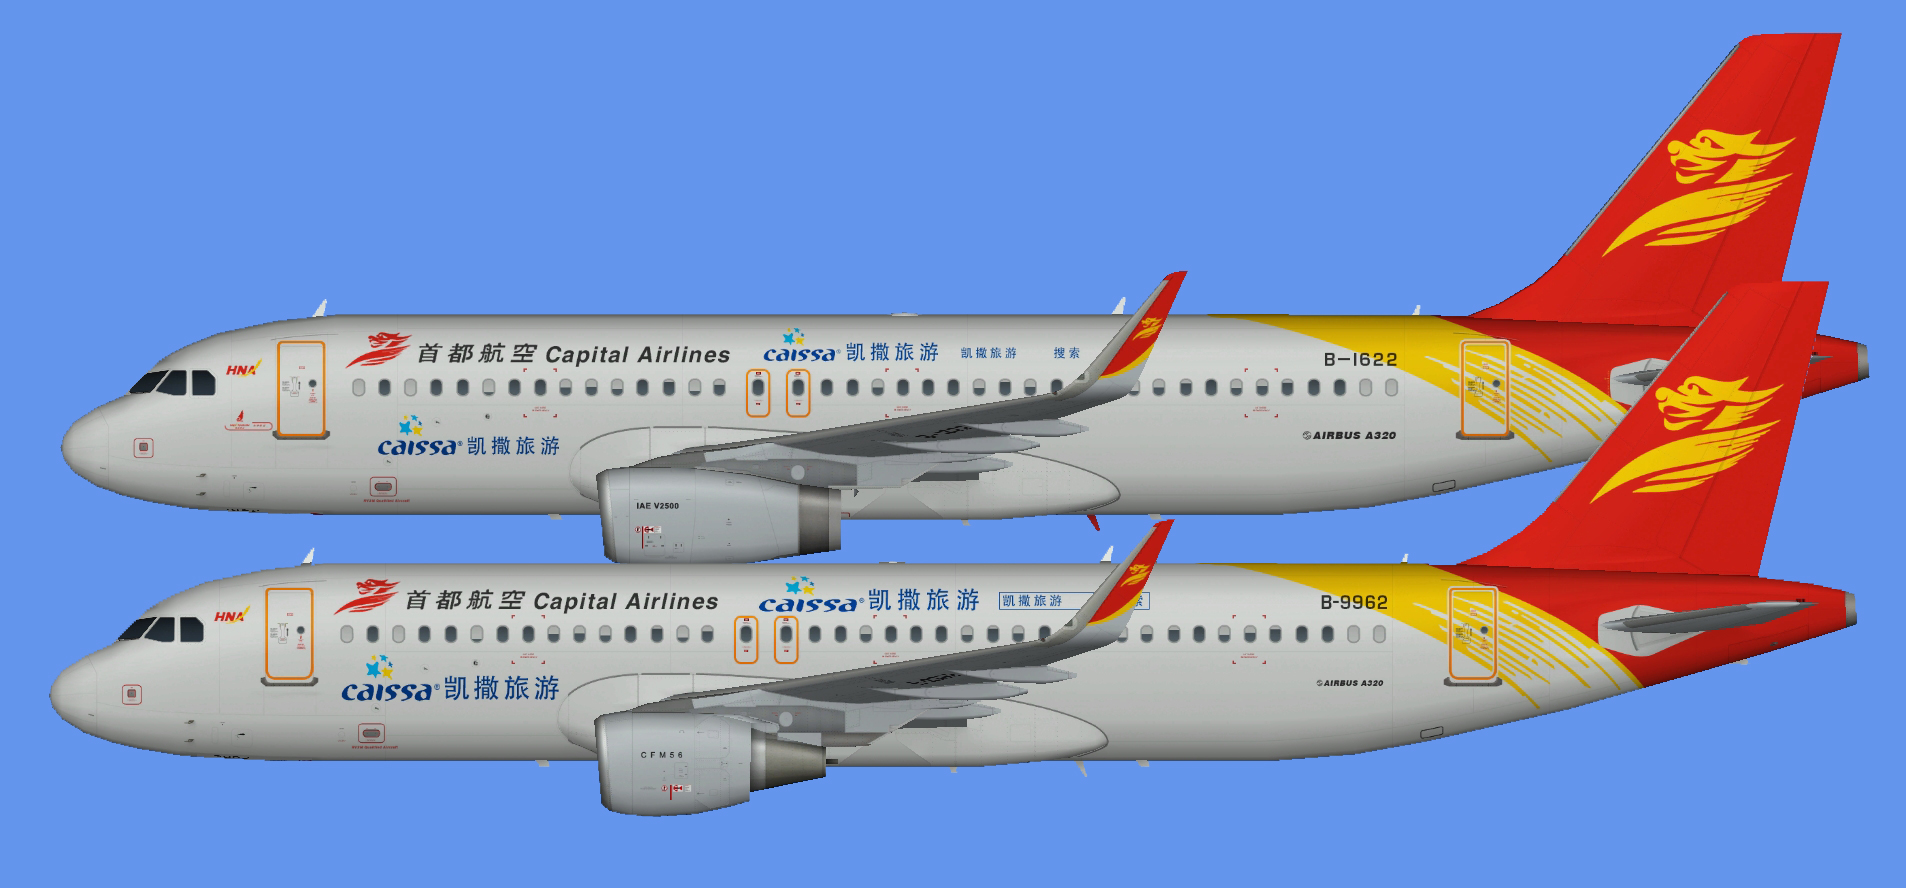 Capital Airlines Airbus A320 SL Caissa logojet